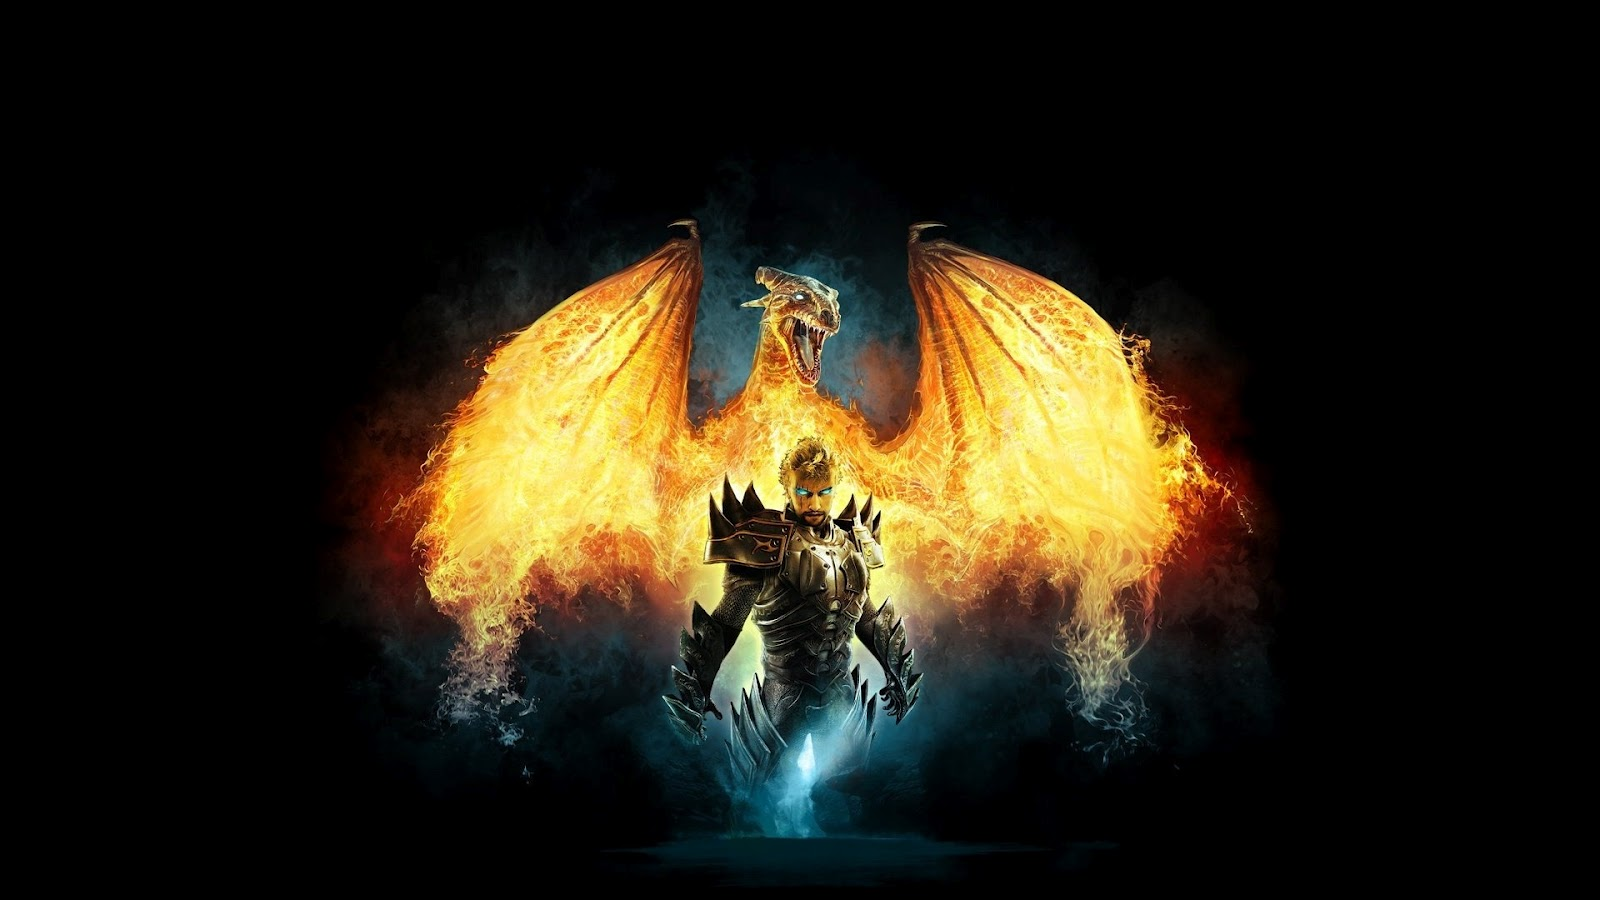 dragons on fire pictures backgrounds